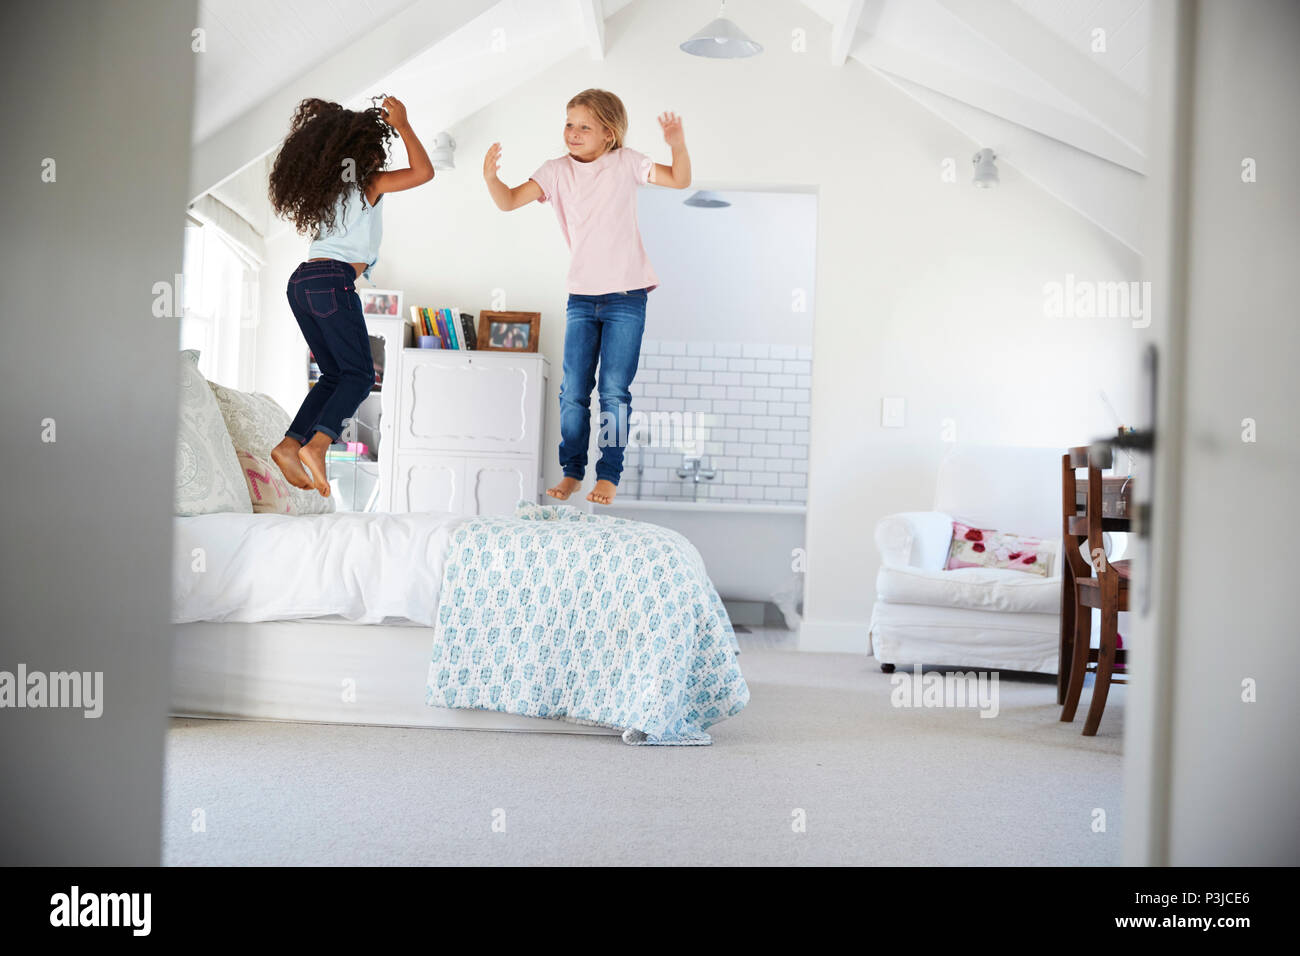 Young girls feet on bathroom immagini young girls feet on bathroom fotos stock alamy - Descrizione di una camera da letto ...